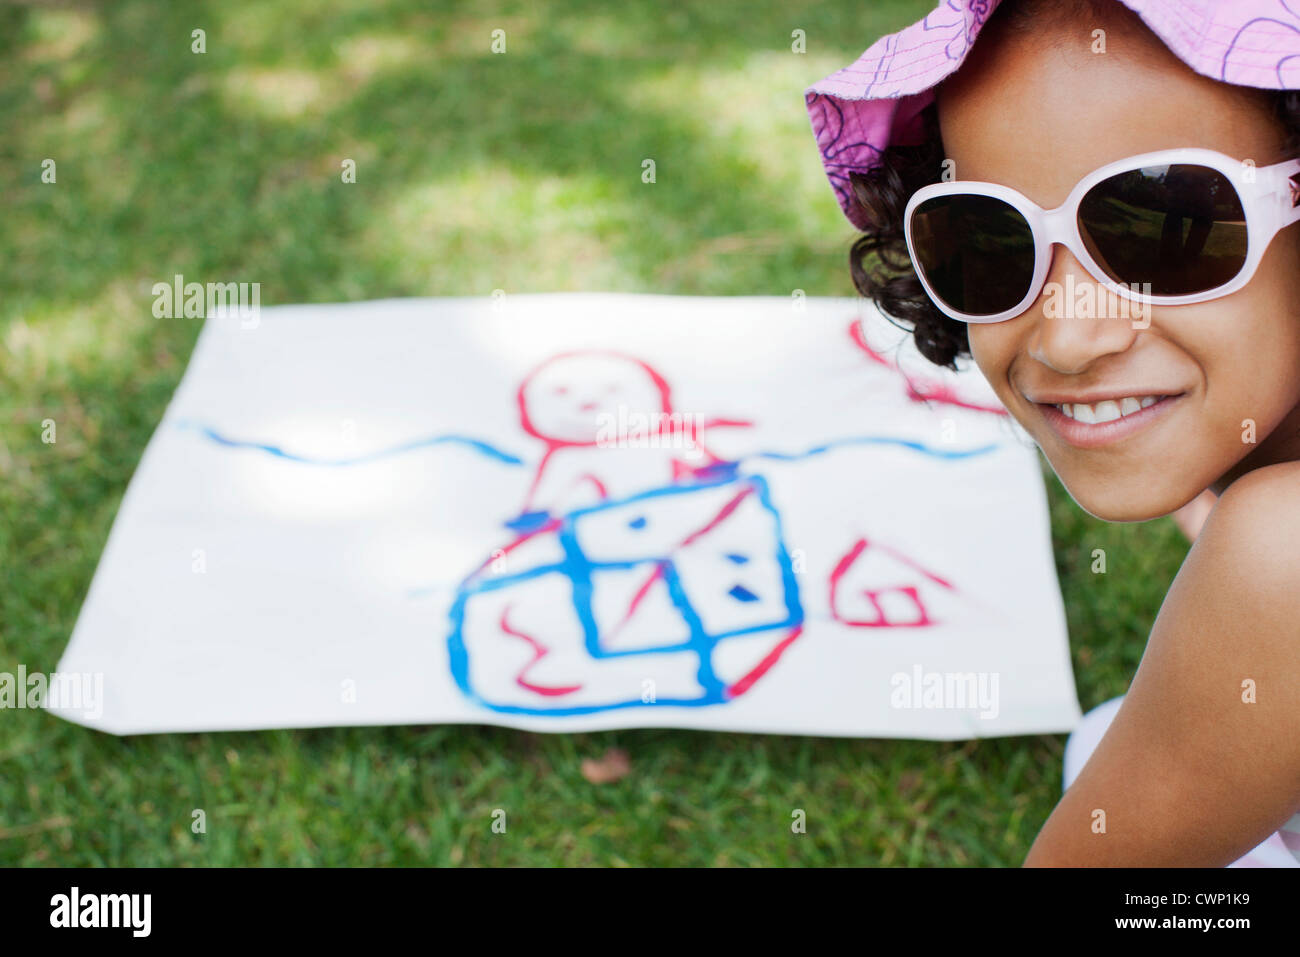 Girl with drawing on grass - Stock Image